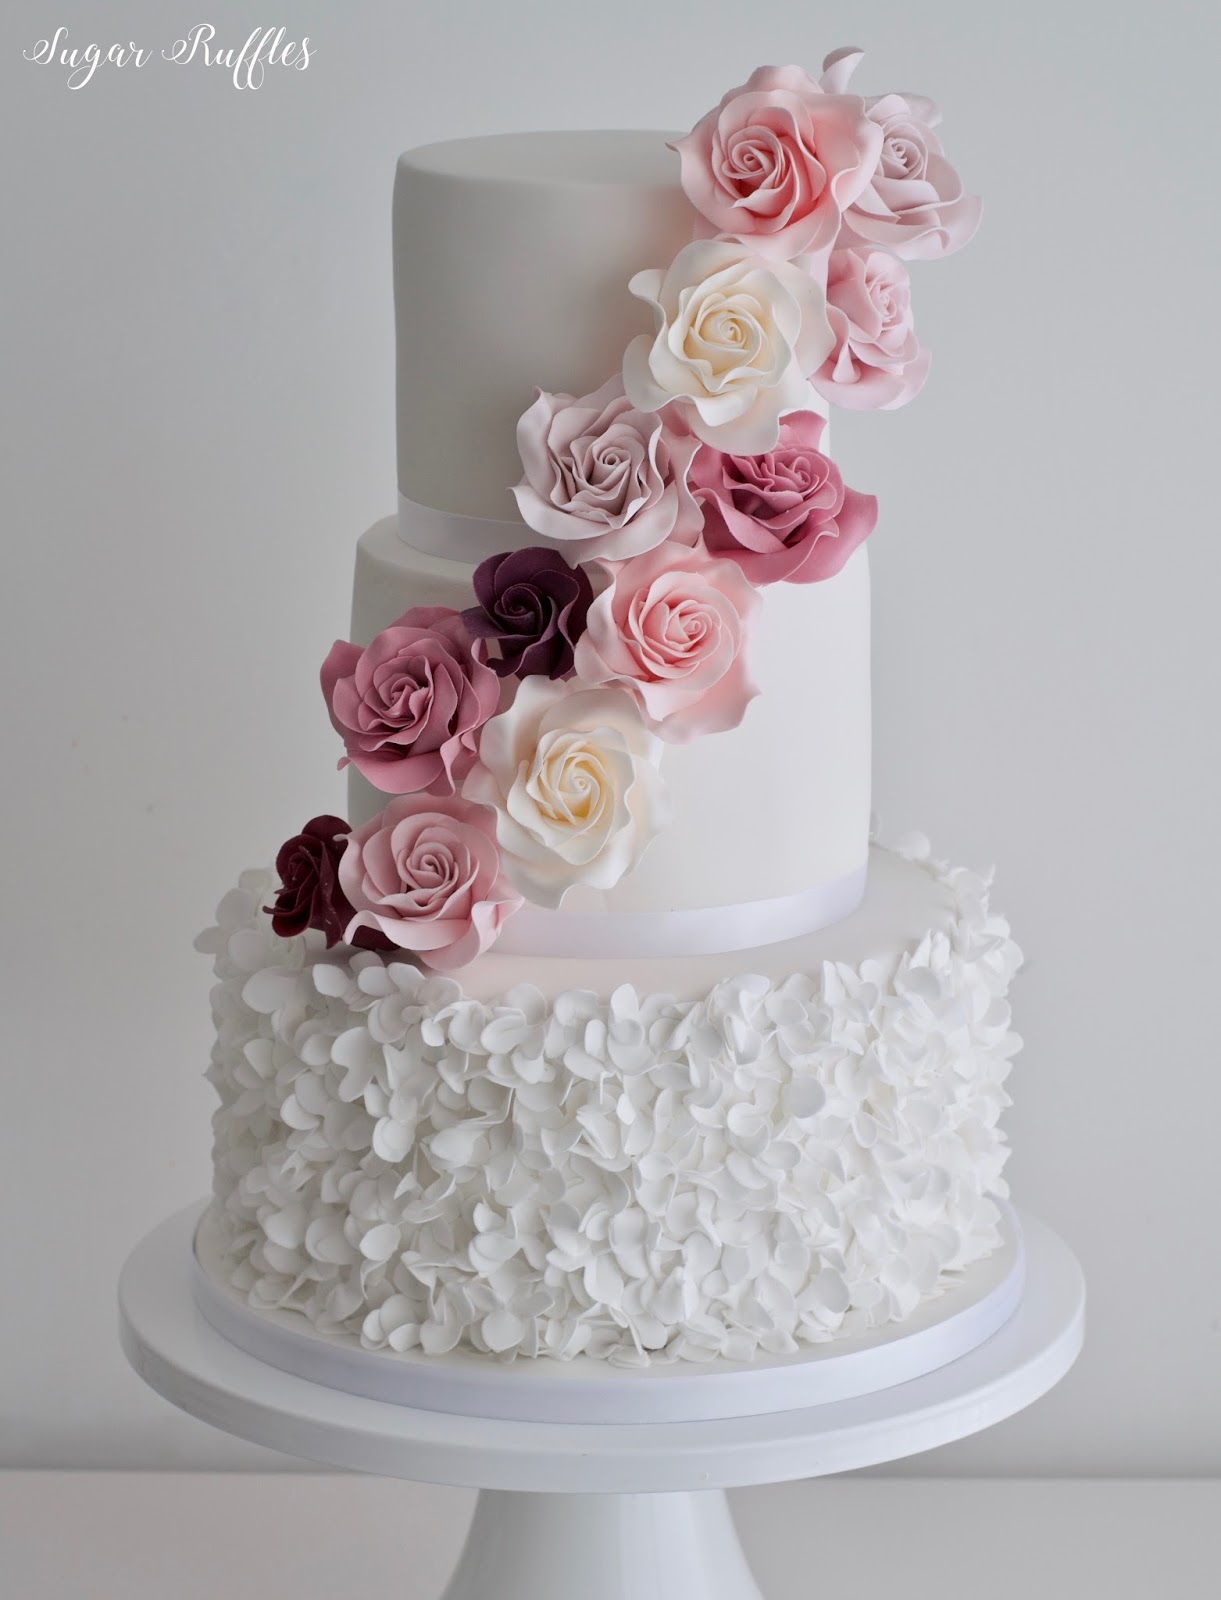 Cascading Sugar Roses and Petal Ruffles